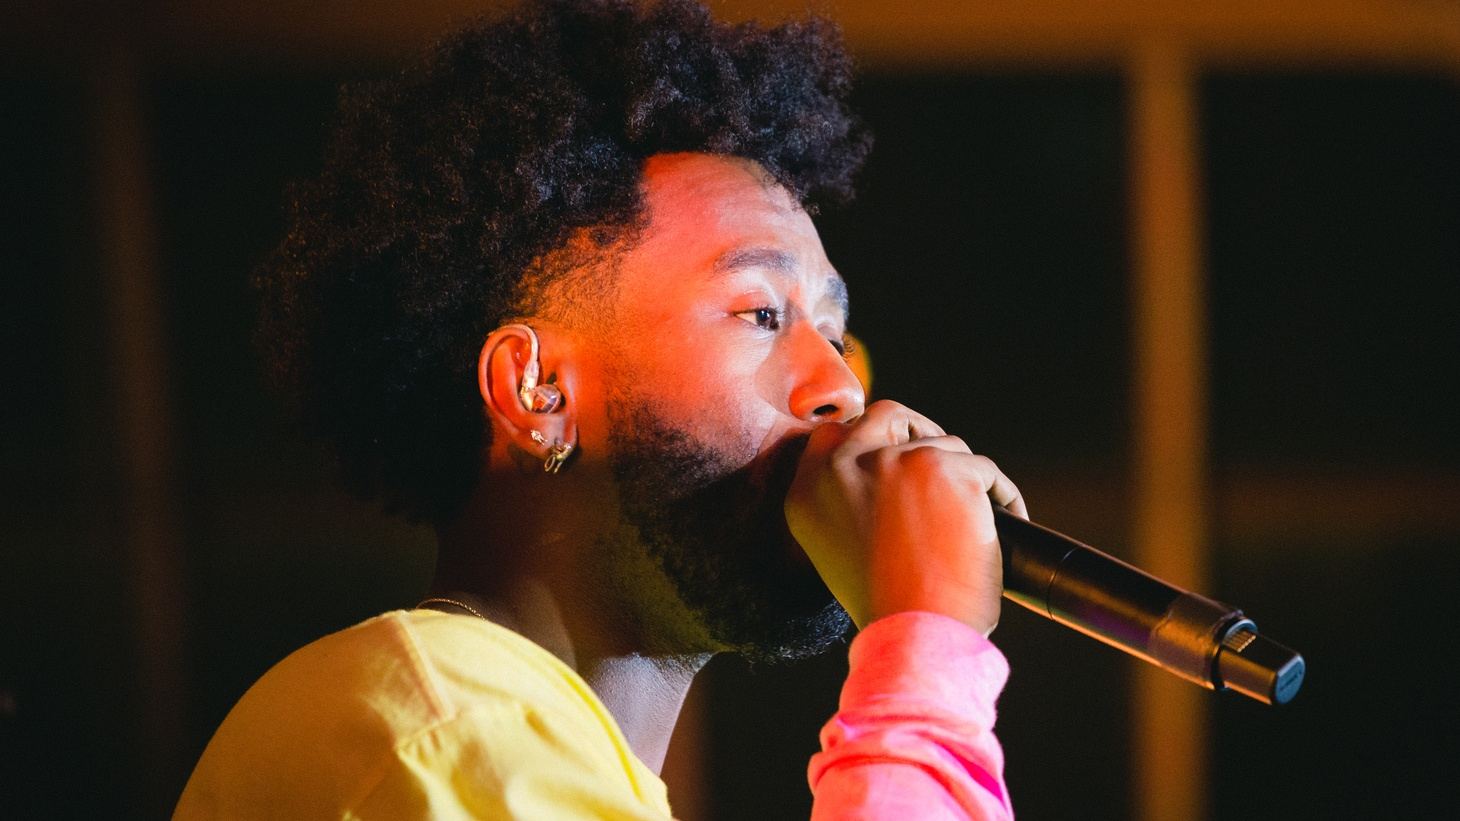 """Peter CottonTale is a Grammy Award-winning producer and Chance the Rapper collaborator, who provides timely and uplifting songs on his debut album """"CATCH  ."""